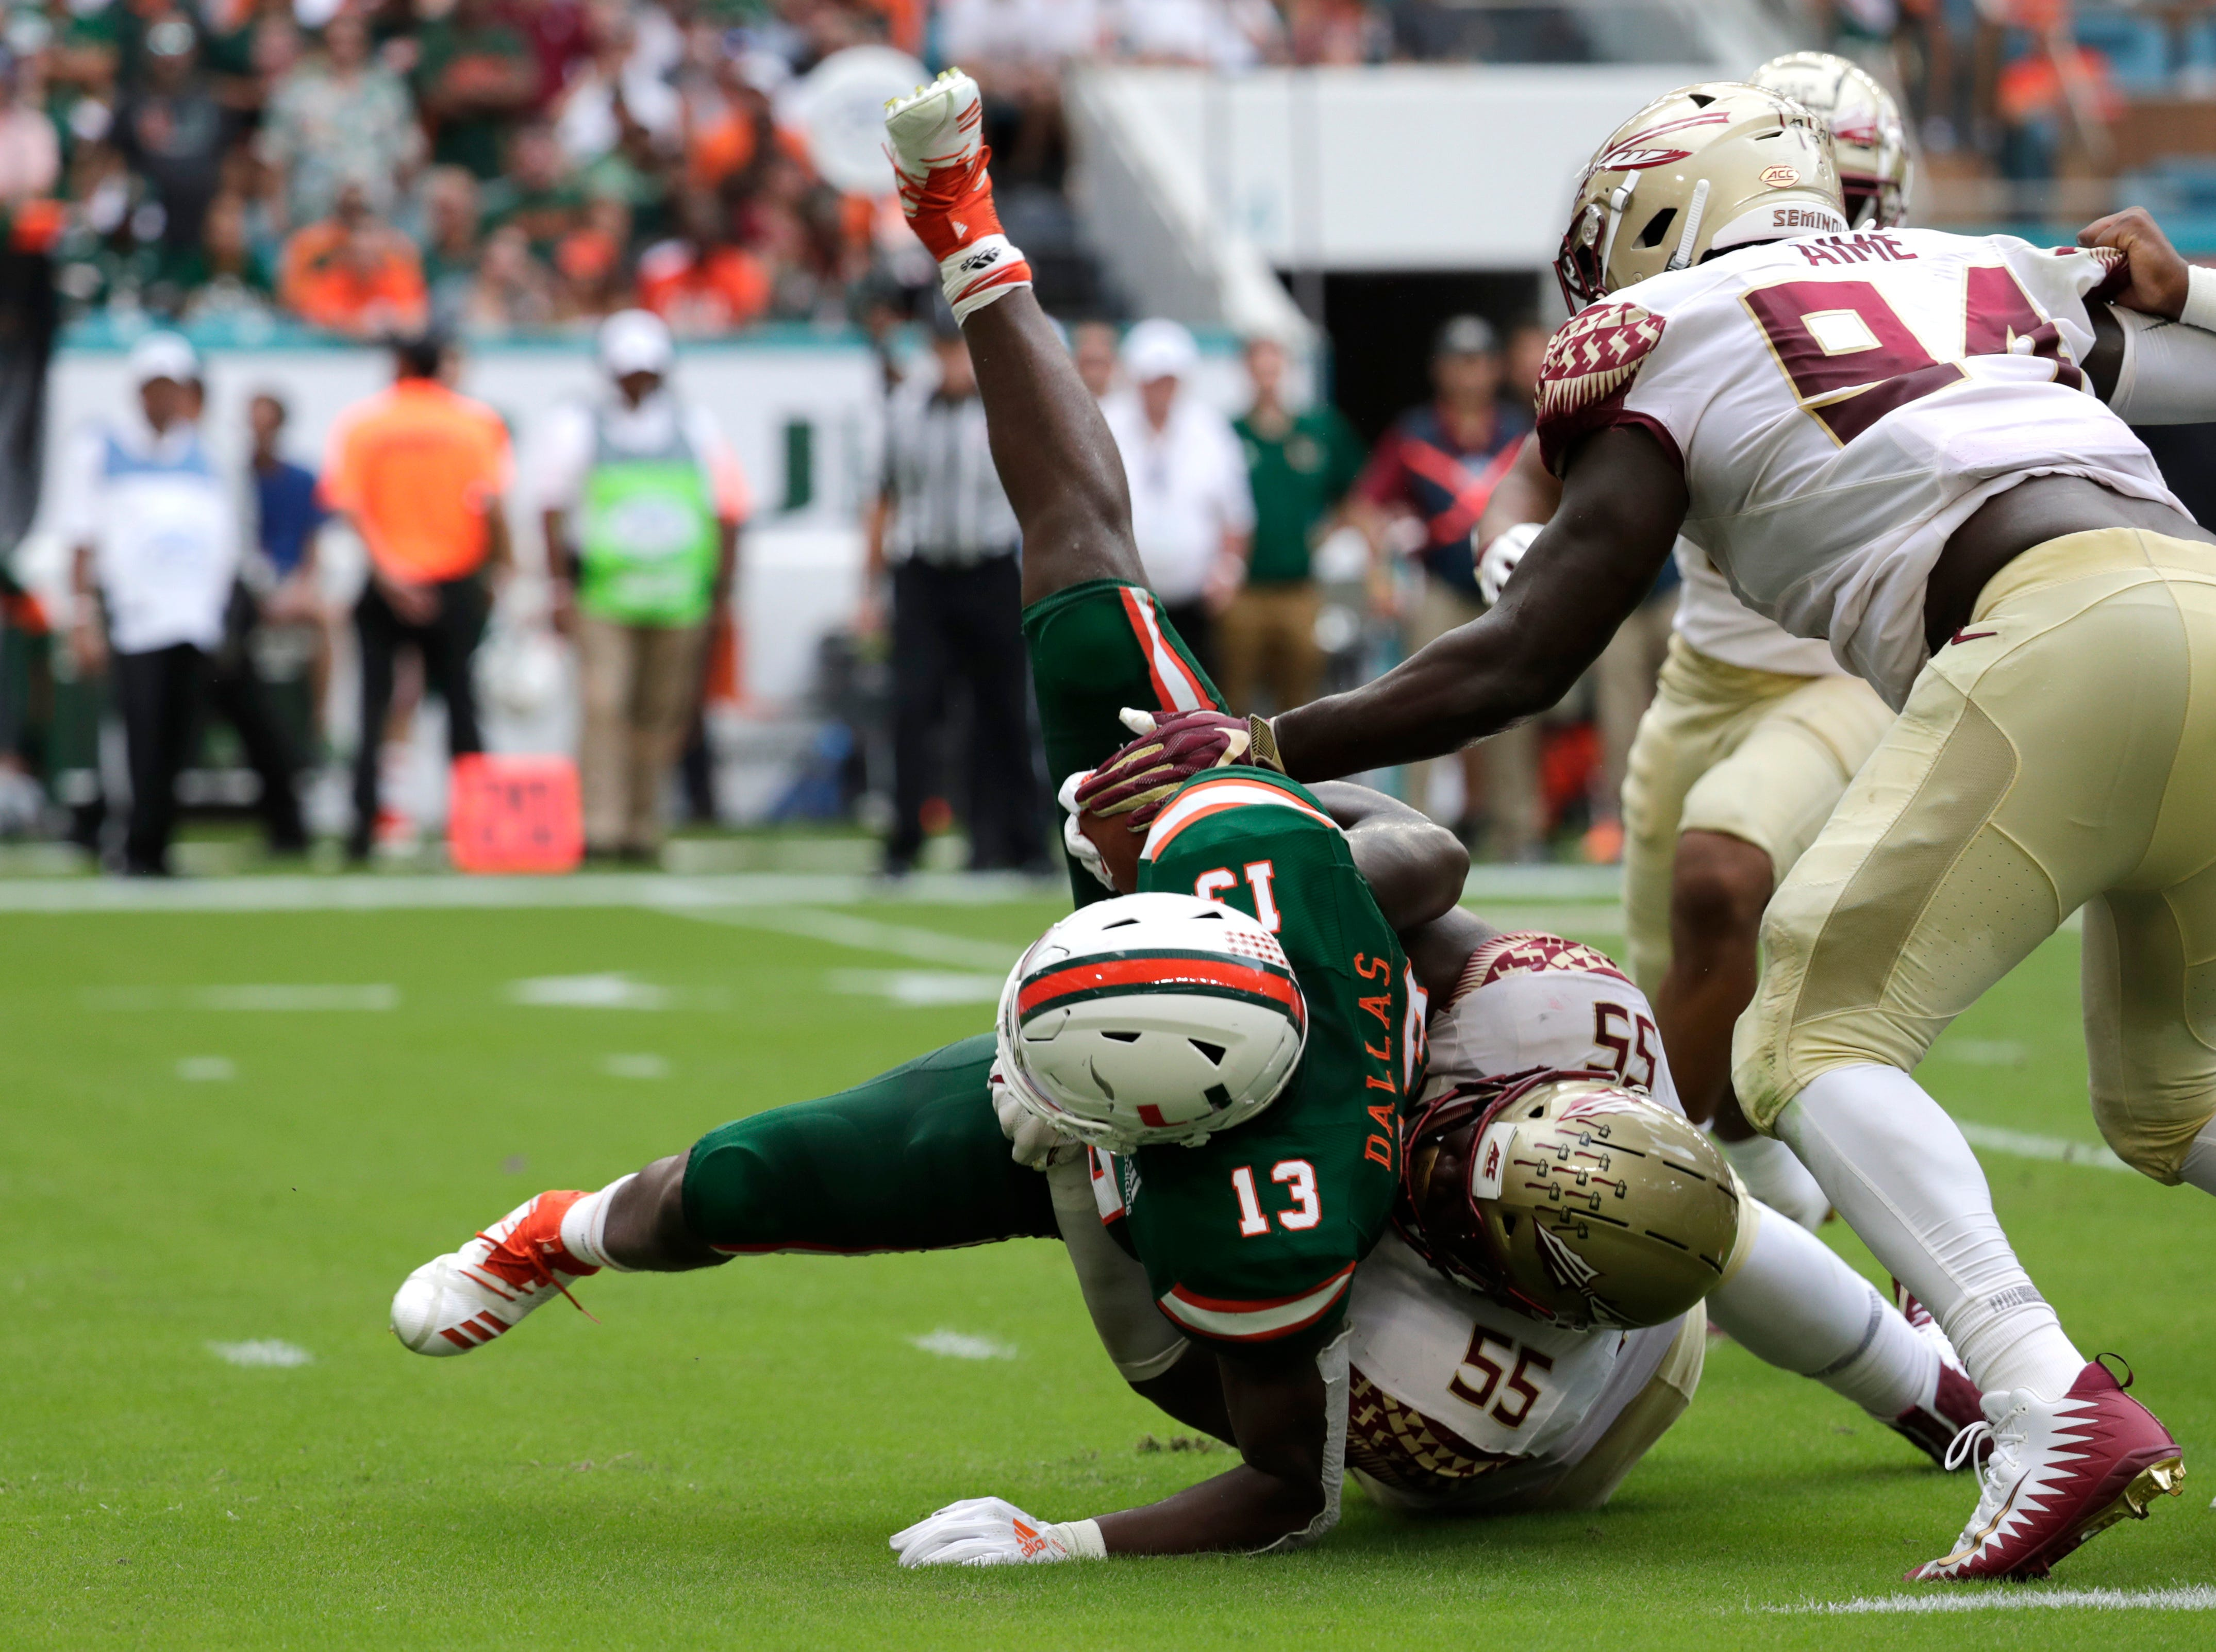 Miami running back DeeJay Dallas (13) is tackled by Florida State defensive tackle Fredrick Jones (55) during the first half of an NCAA college football game, Saturday, Oct. 6, 2018, in Miami Gardens, Fla. (AP Photo/Lynne Sladky)